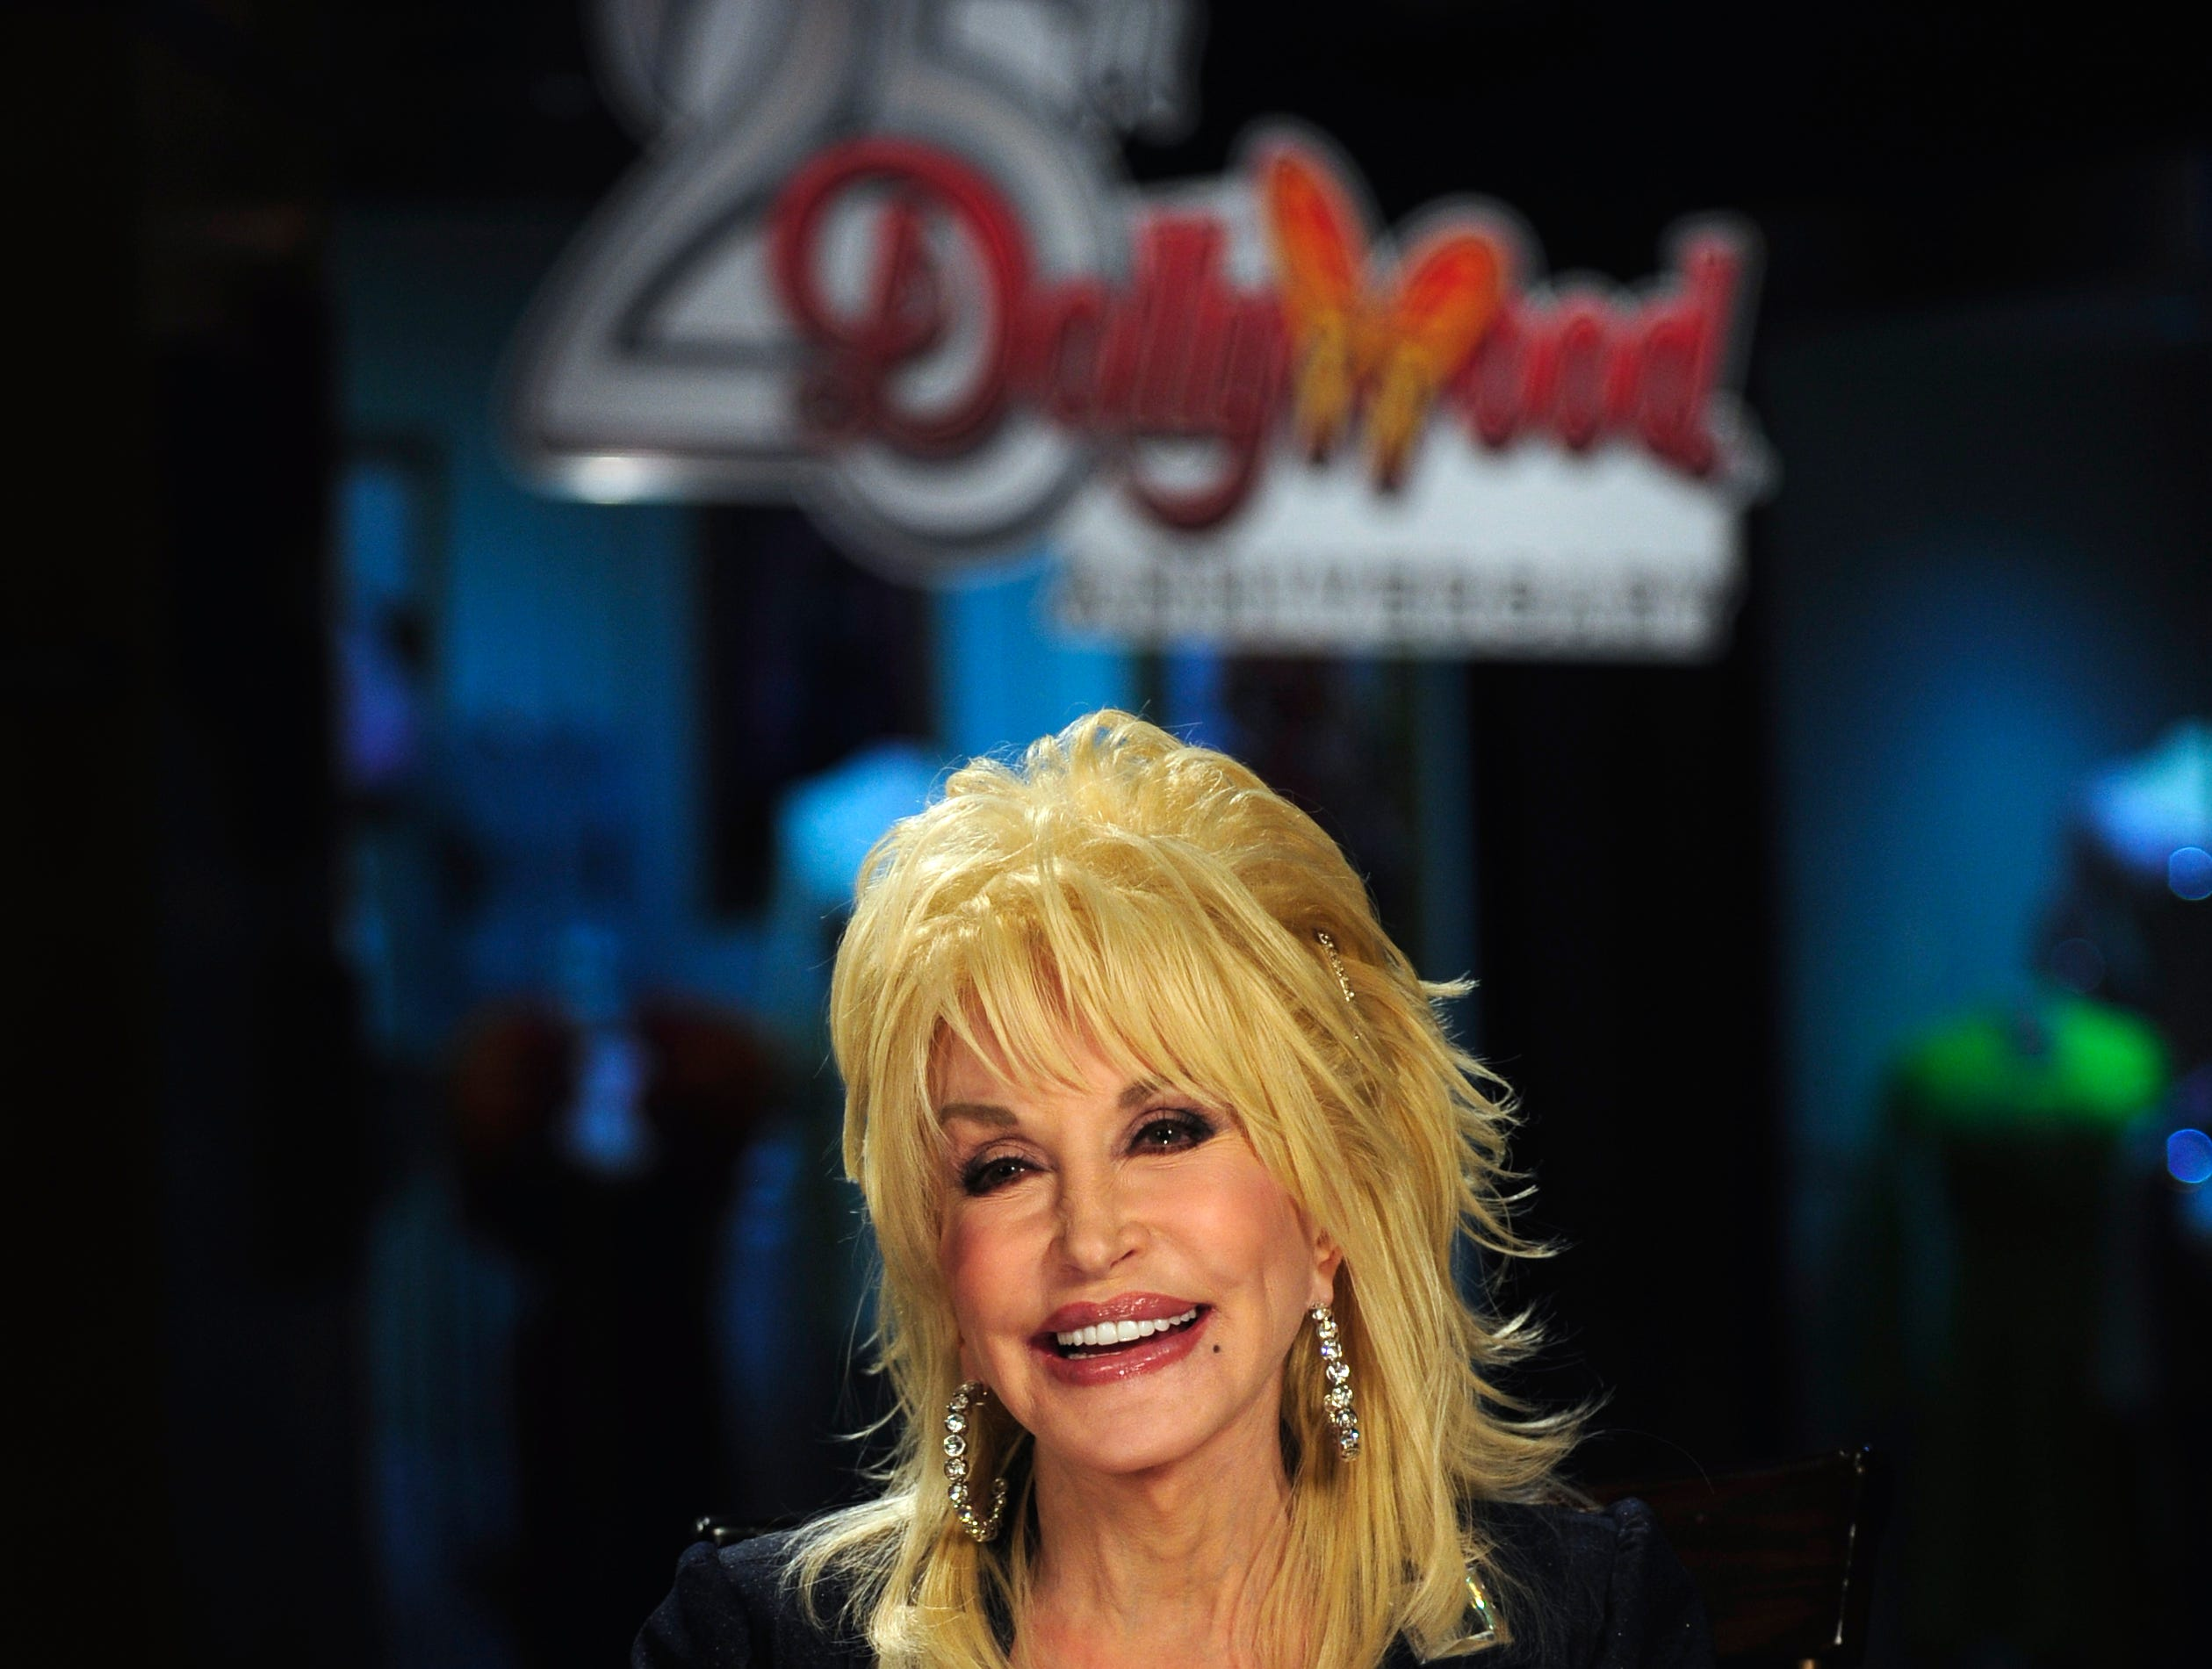 Dolly Parton gives an interview at Dollywood Mar. 26, 2010. Parton was in town to celebrate the park's 25th anniversary.